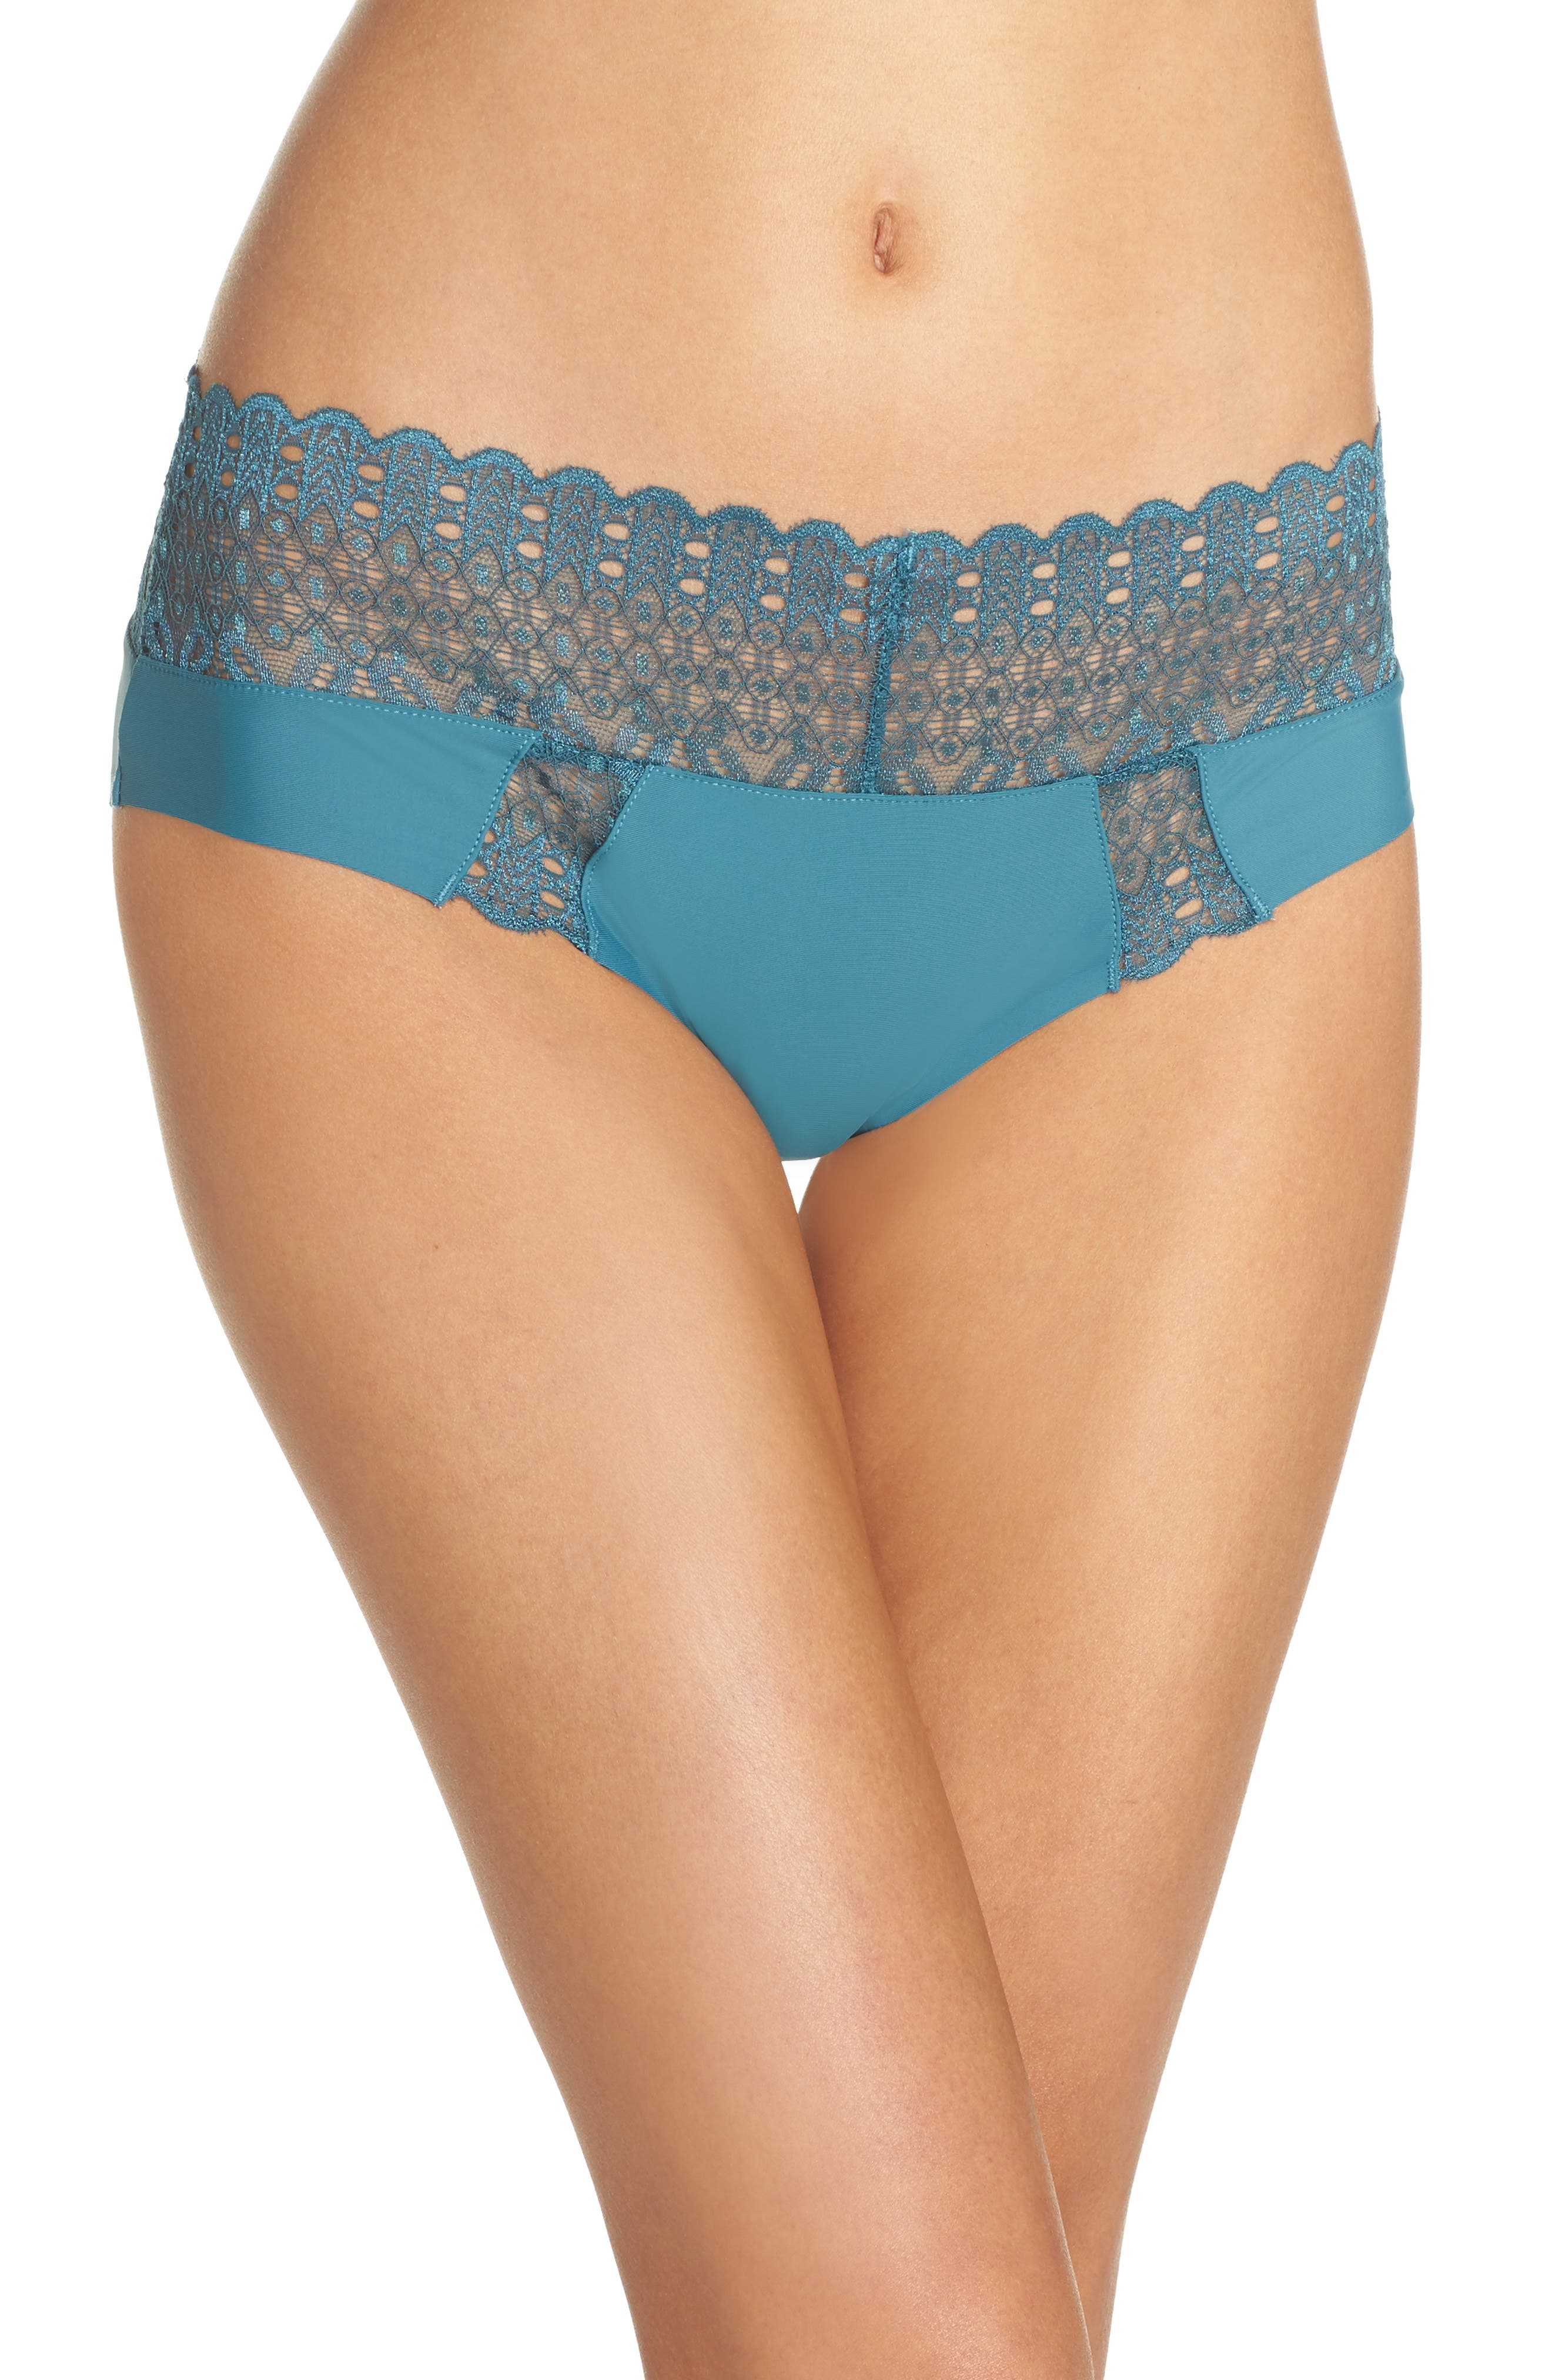 Lace Hipster Briefs,                             Main thumbnail 1, color,                             Love Fern